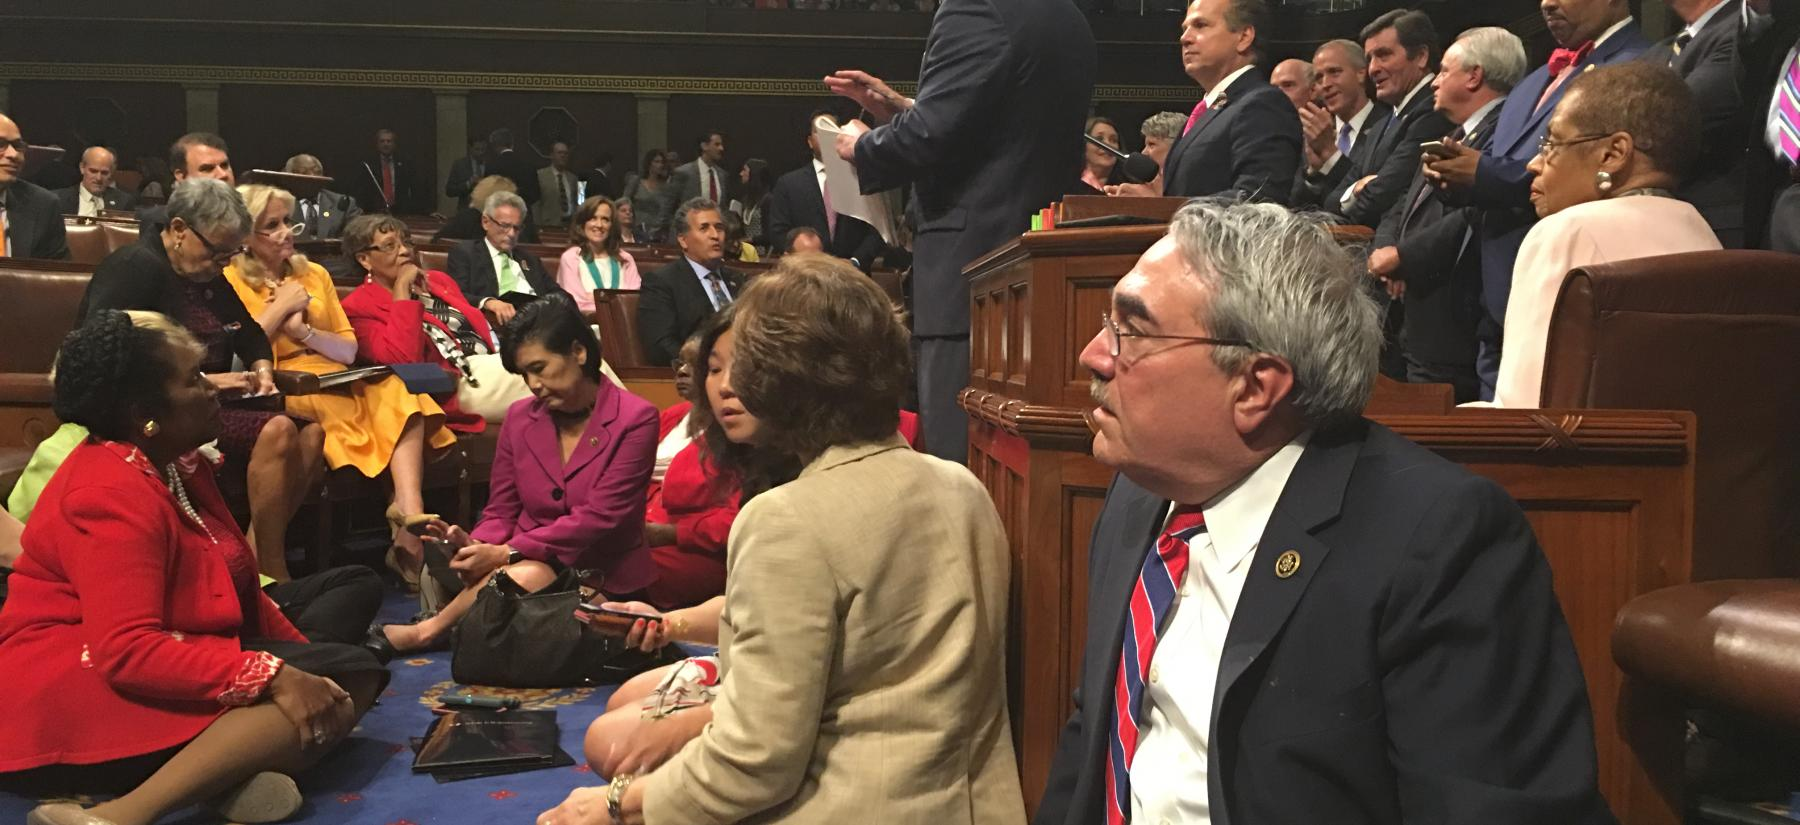 House Democrats' 26-hour sit-in on the House Floor to protest to demand action on gun violence